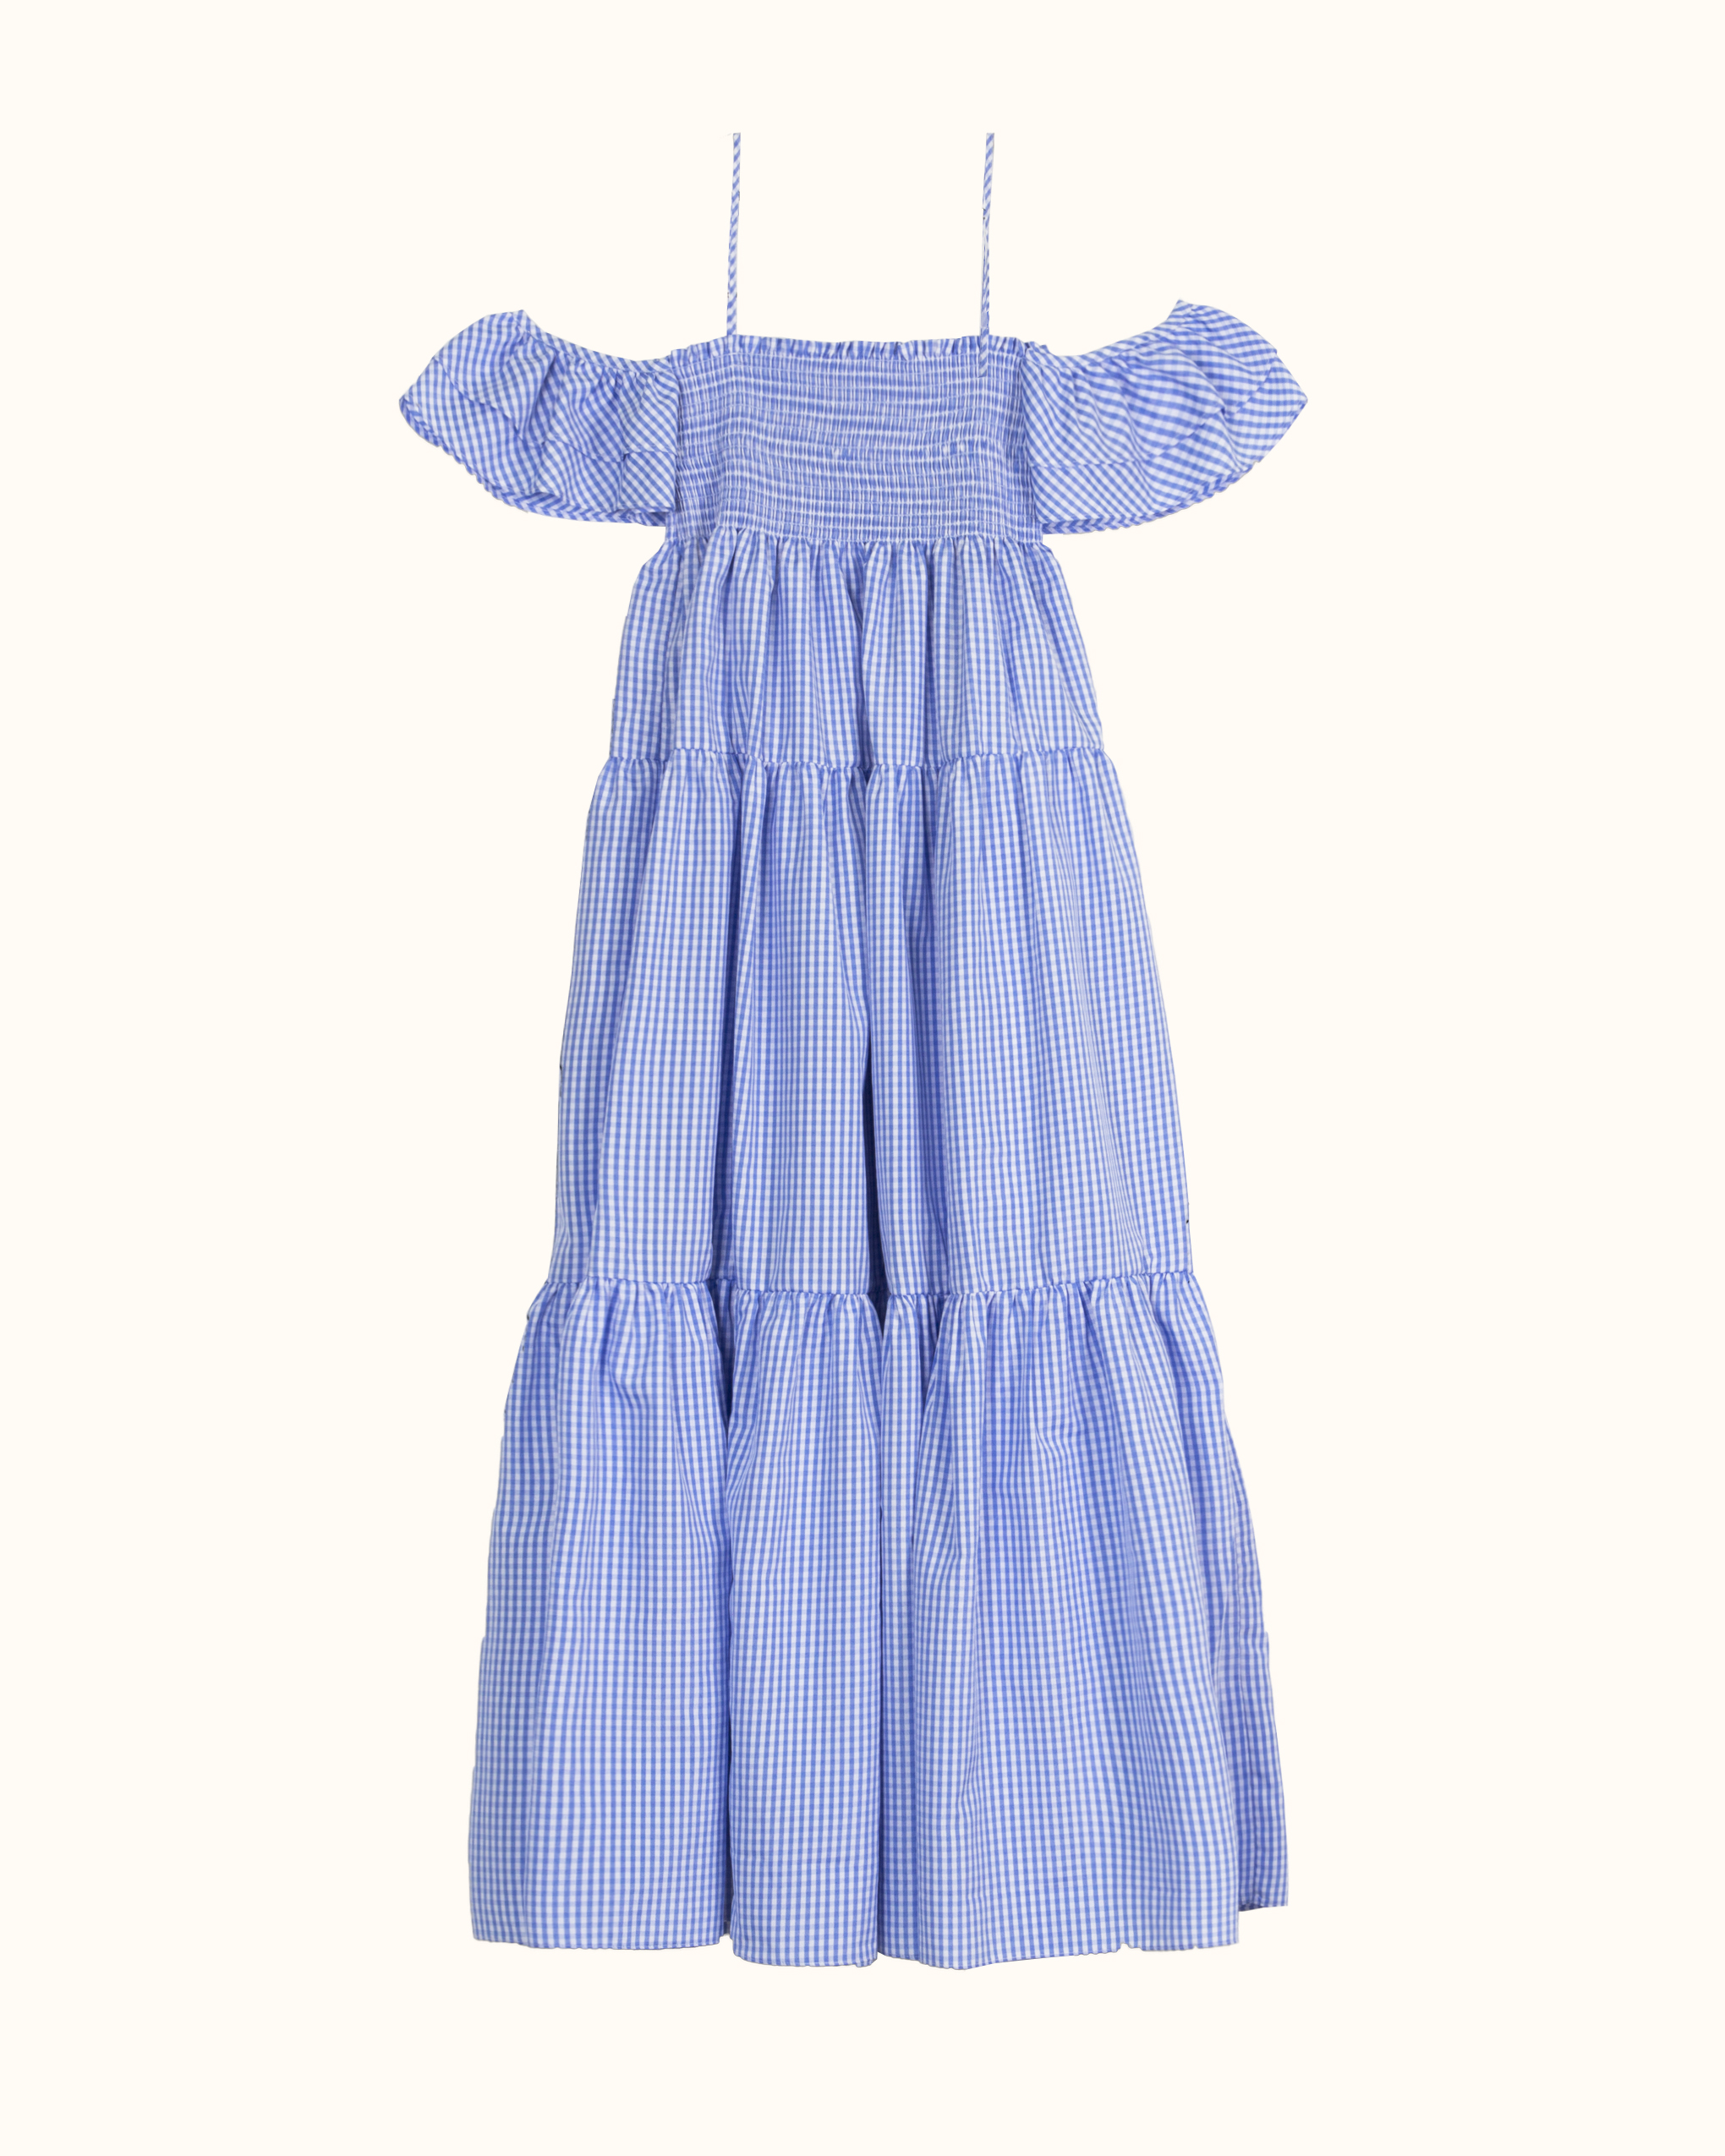 A blue check ruffle off-the-shoulder dress.